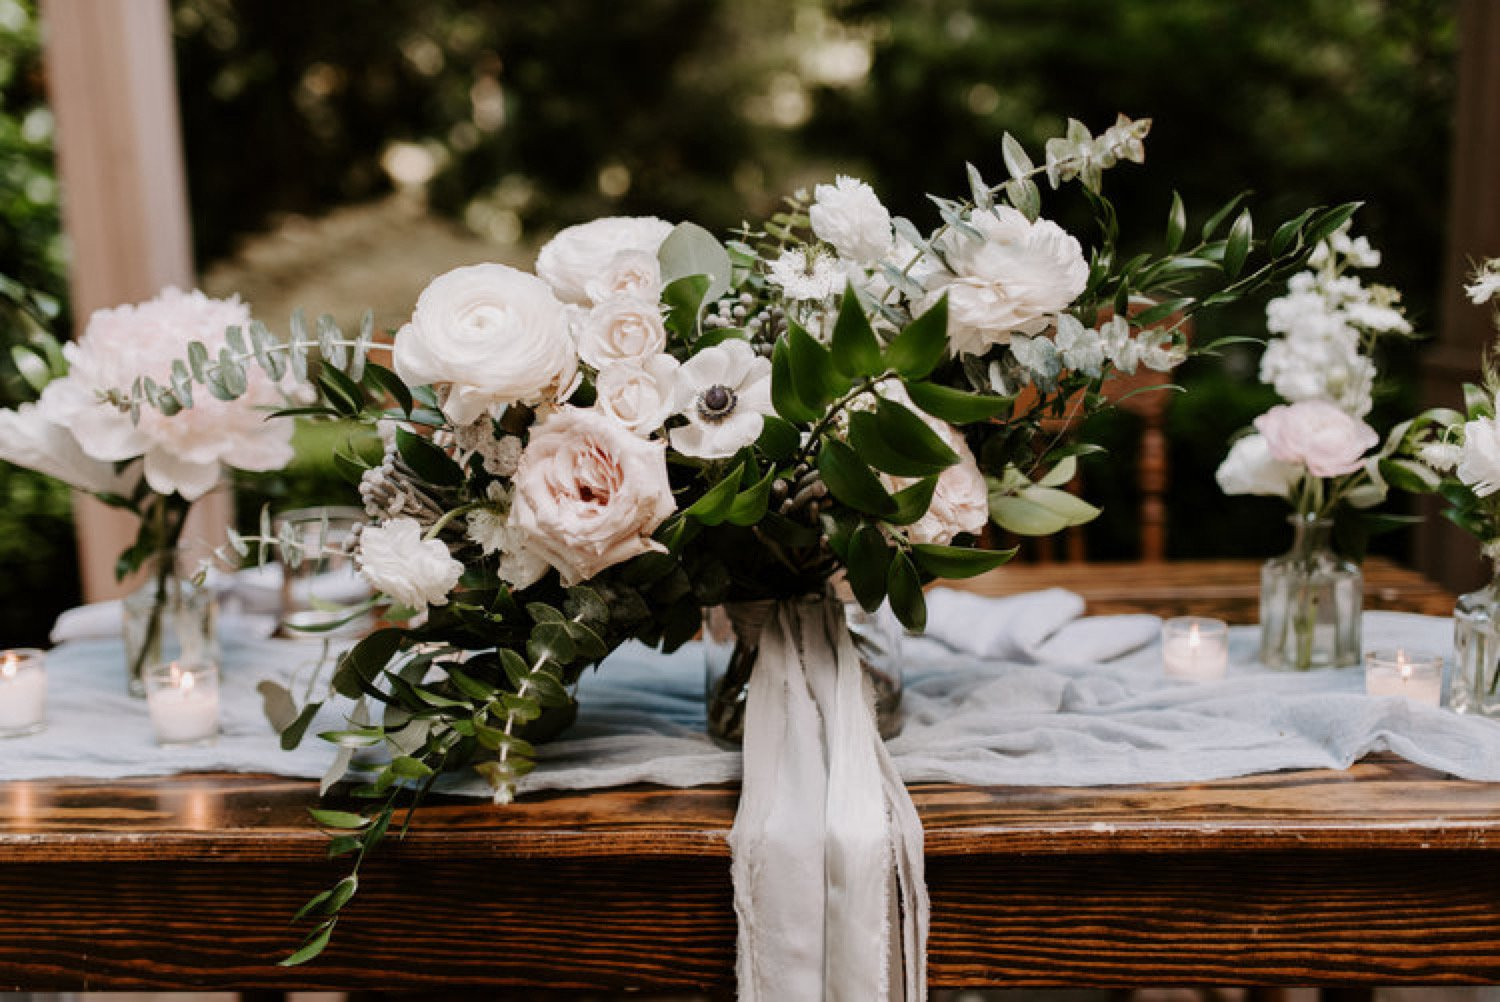 simple and romantic bouquet with white flowers and lots of greenery.